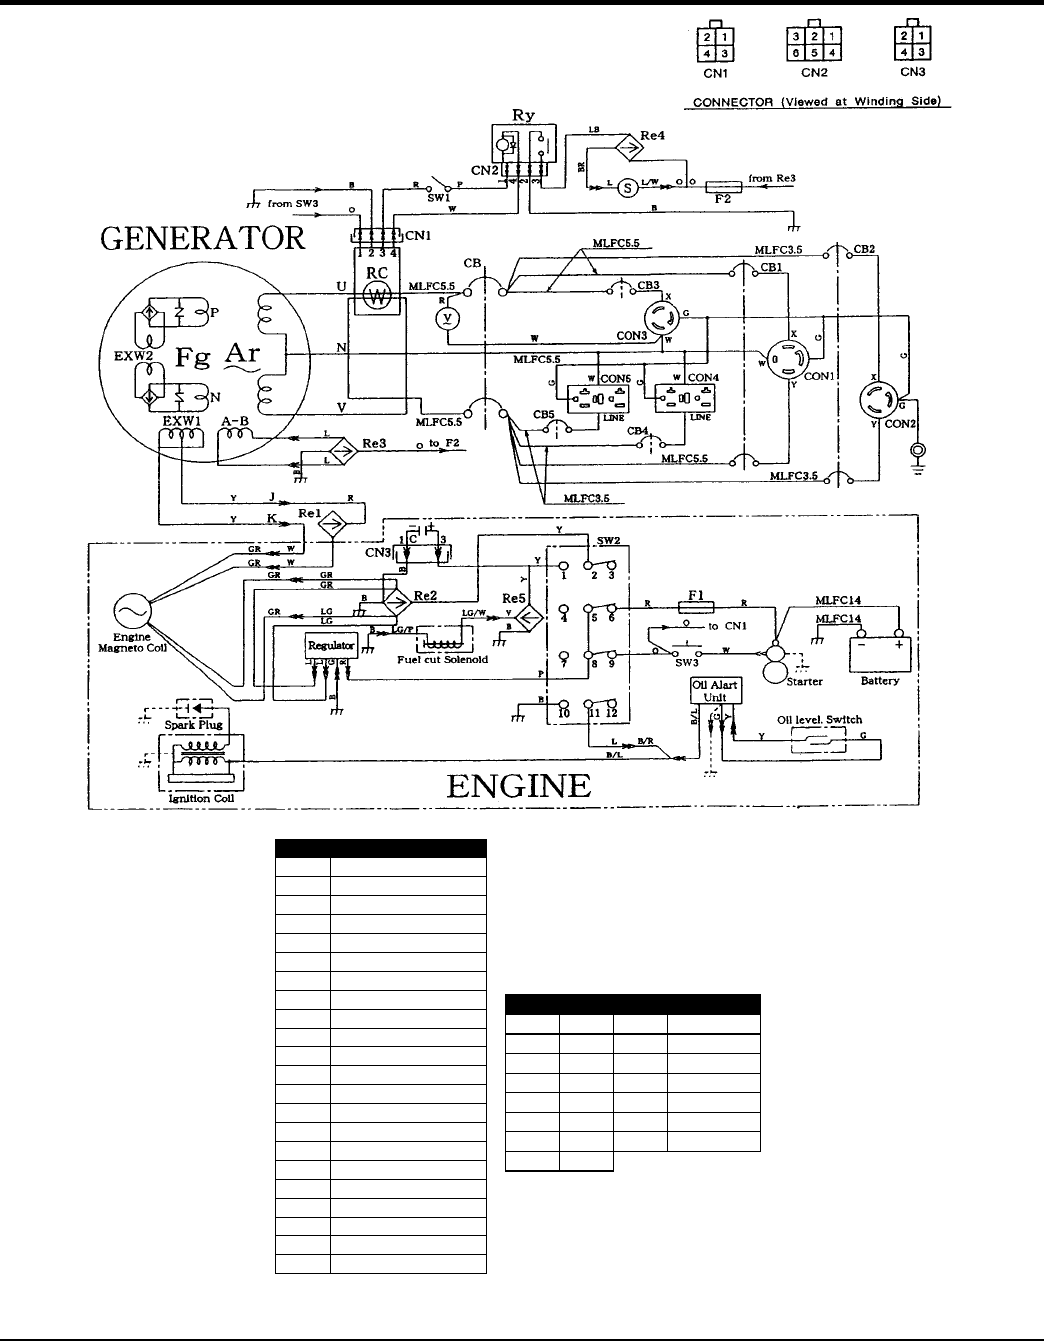 Page 29 of multiquip portable generator ga 97he user guide ga97he 60 hz generator operation and parts manual rev 1 042910 page 29 generator wiring digram asfbconference2016 Images